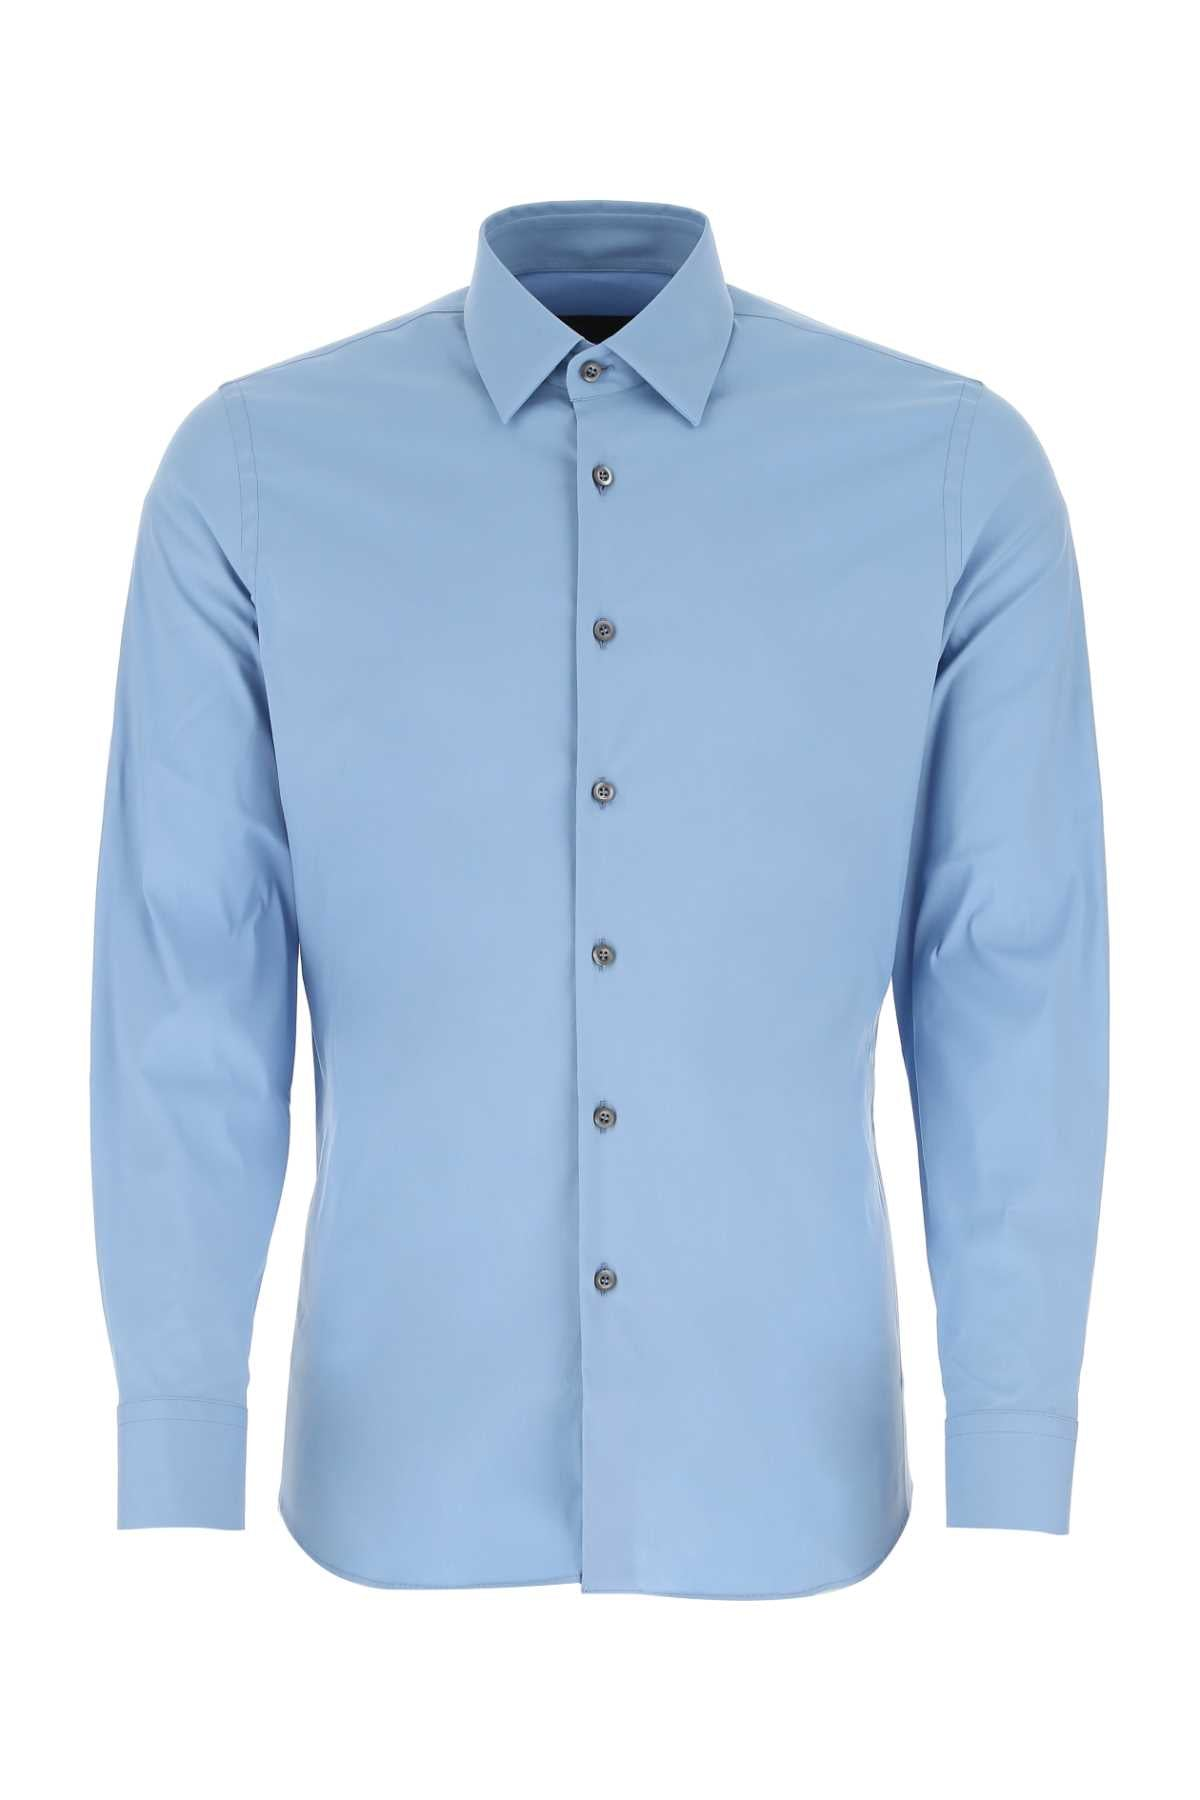 Prada PRADA STRETCH POPLIN SHIRT